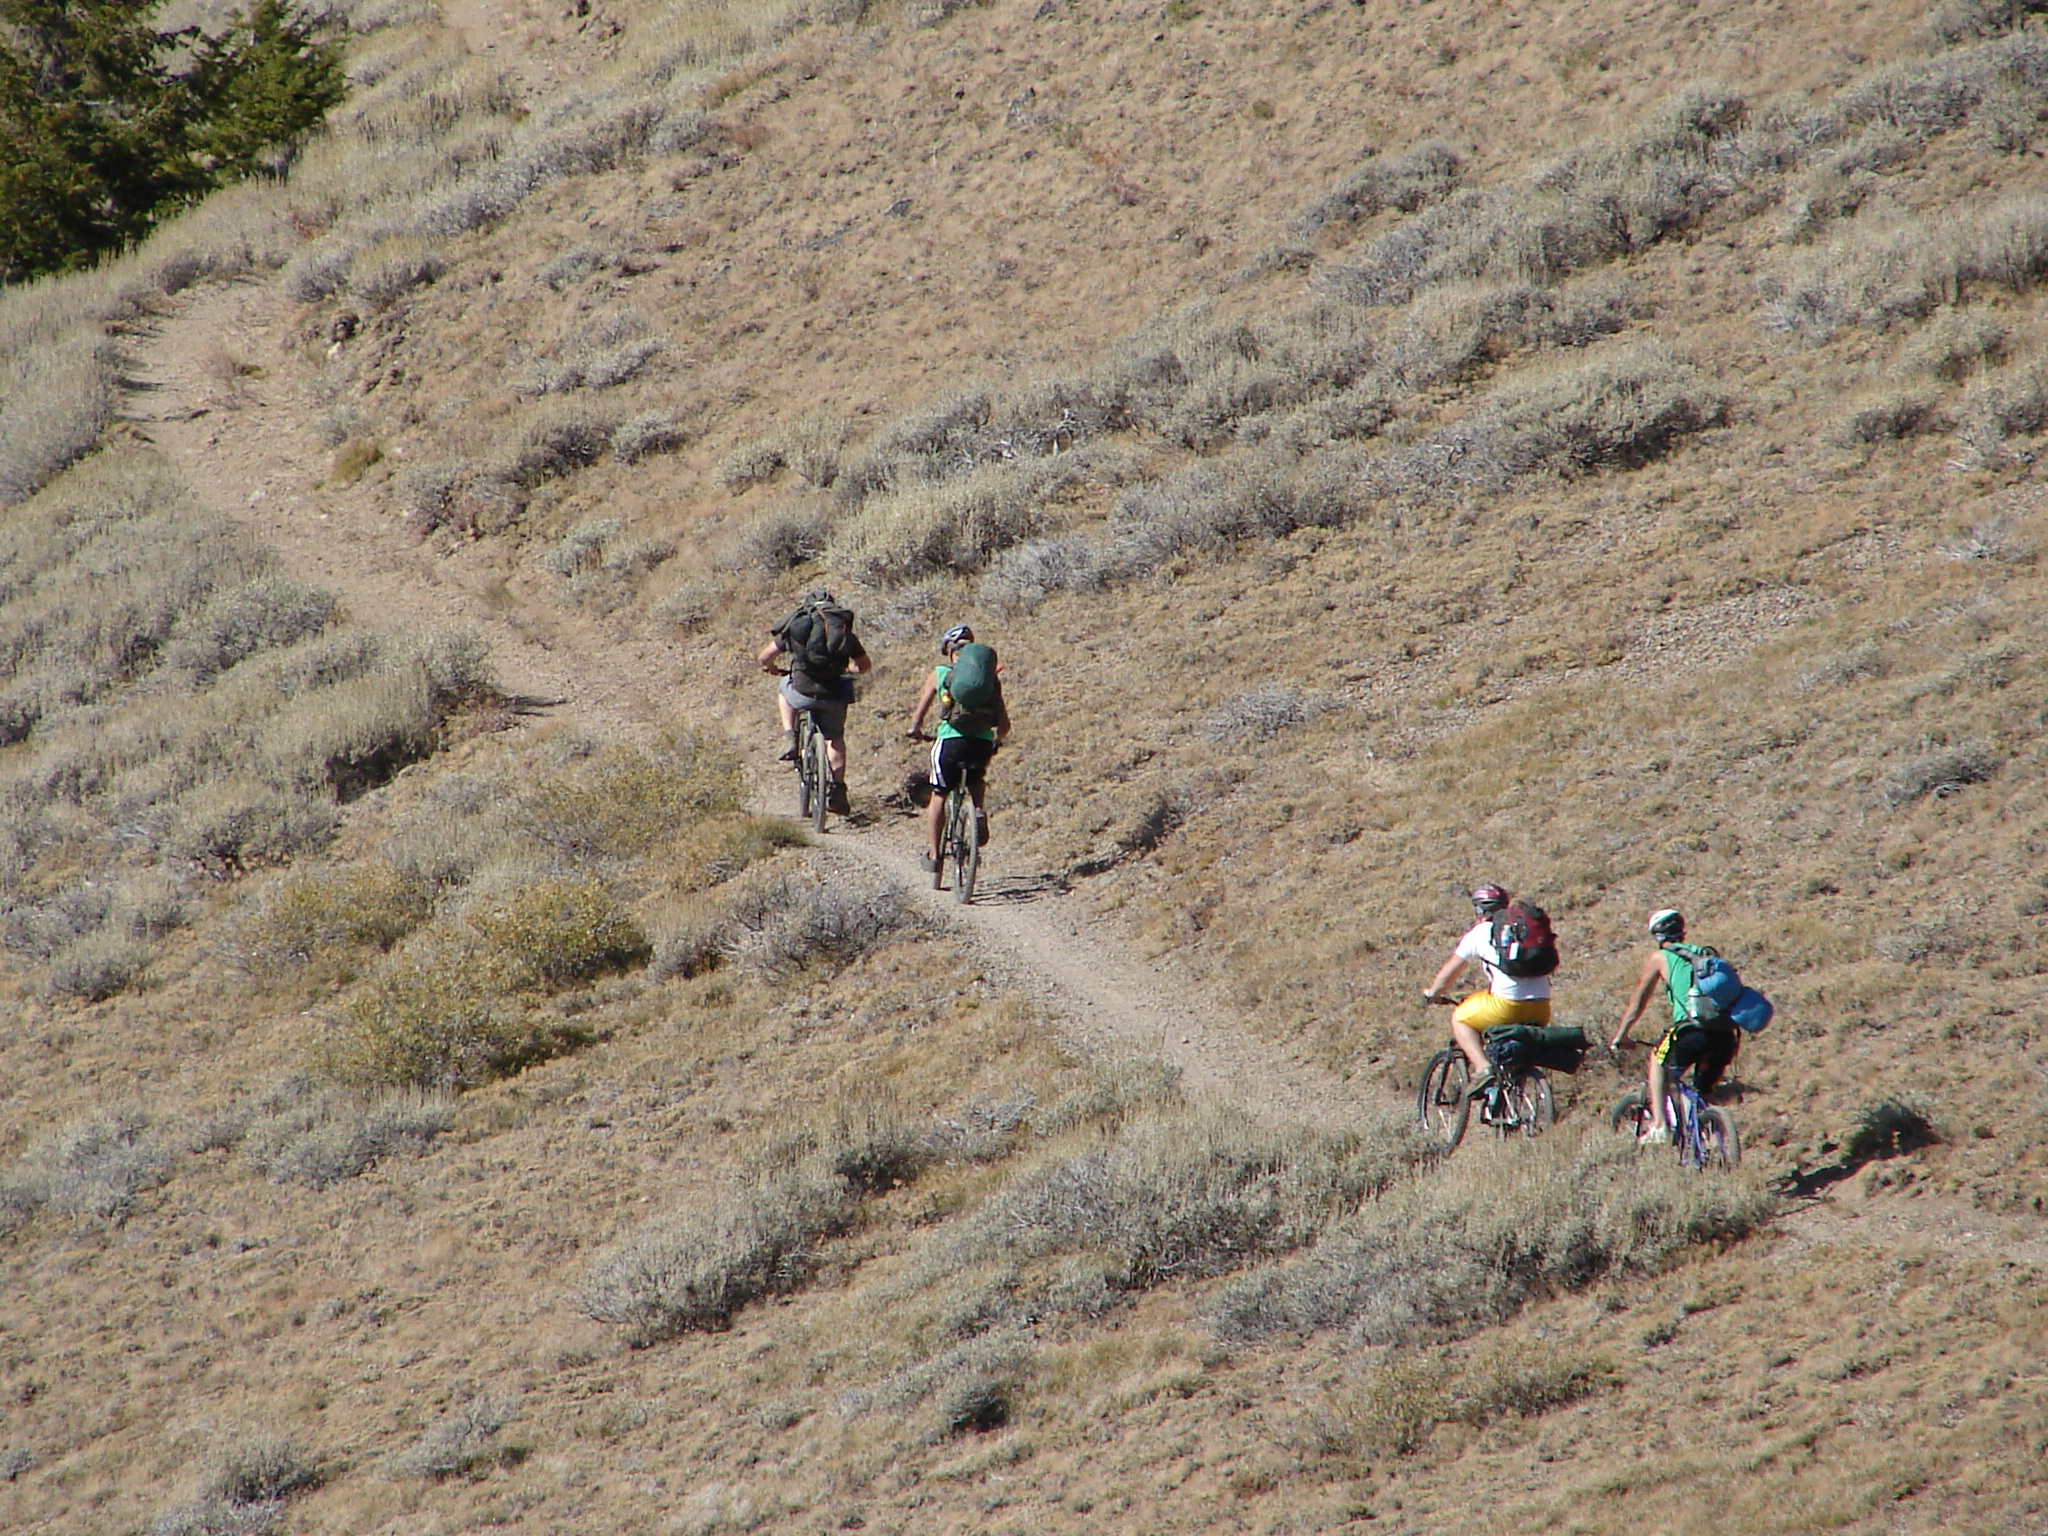 4 people riding mountain bikes on a trail